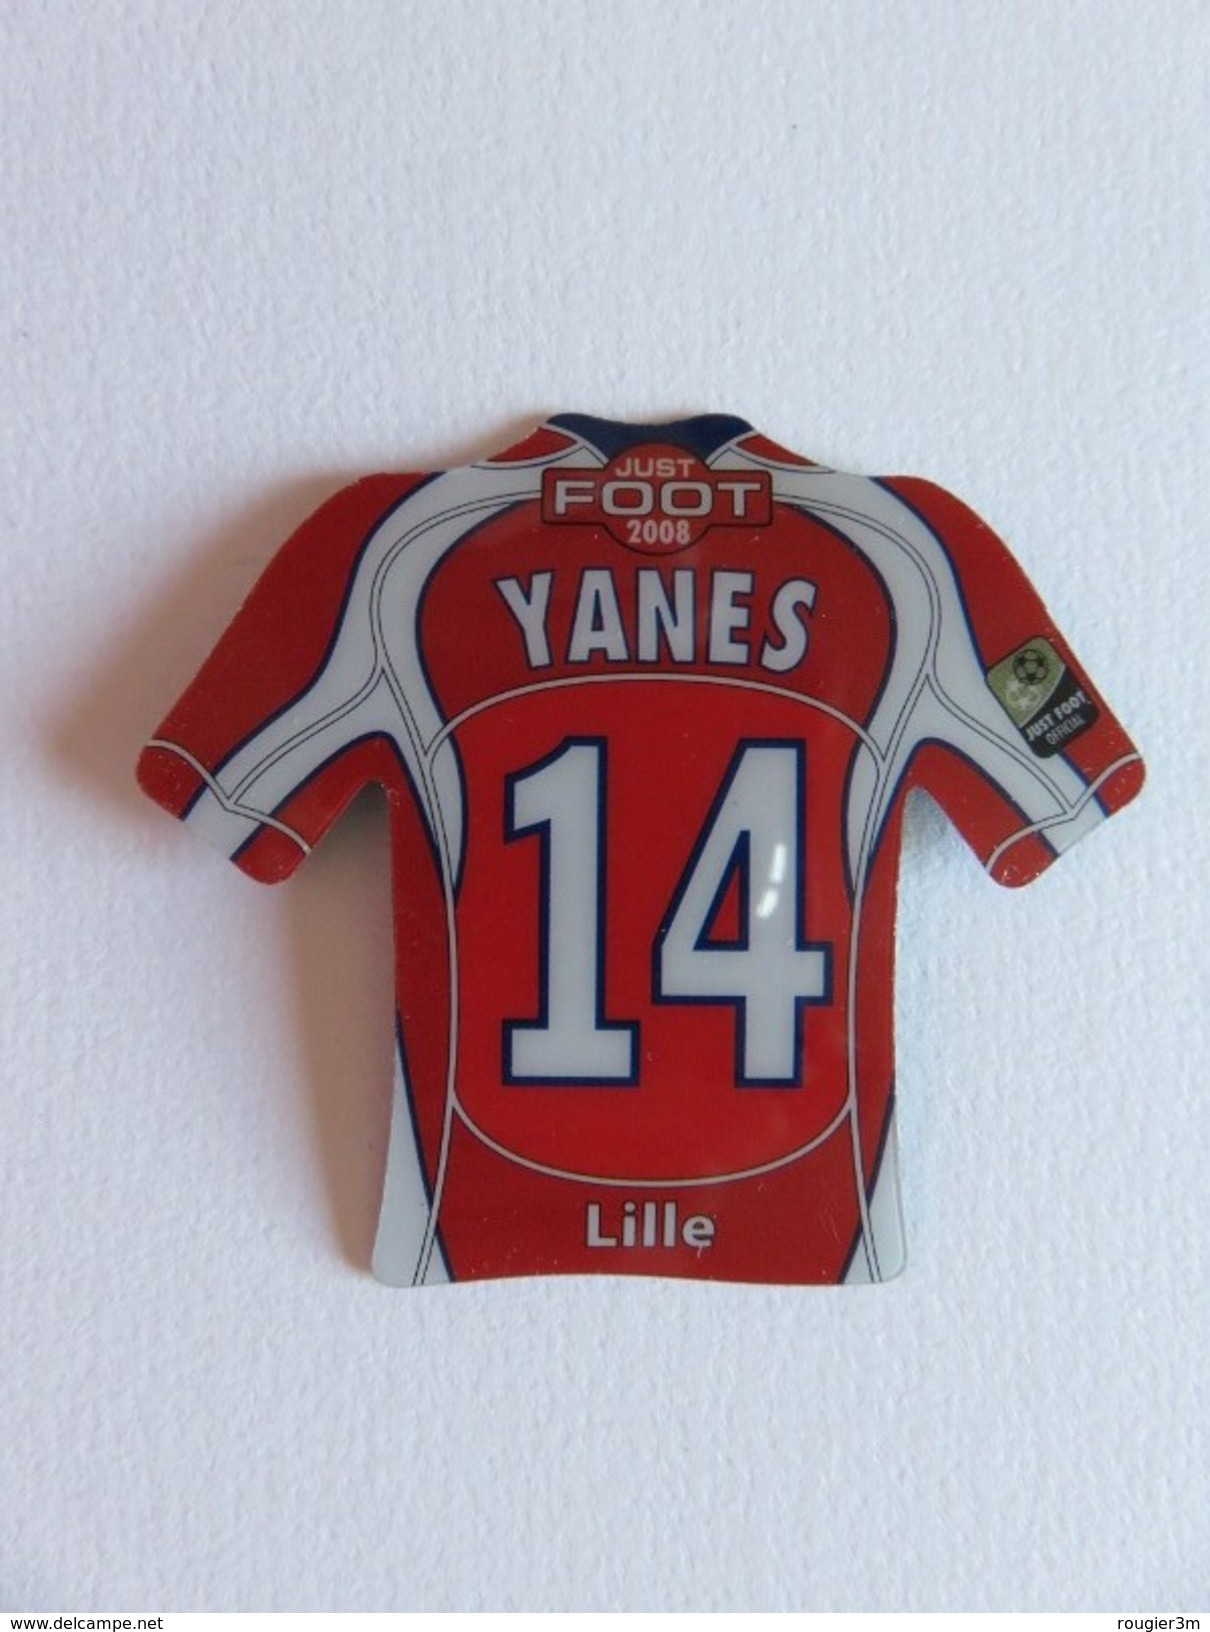 Magnet - Just Foot 2008 - Yanes - Maillot N° 14 - Lille - Sports